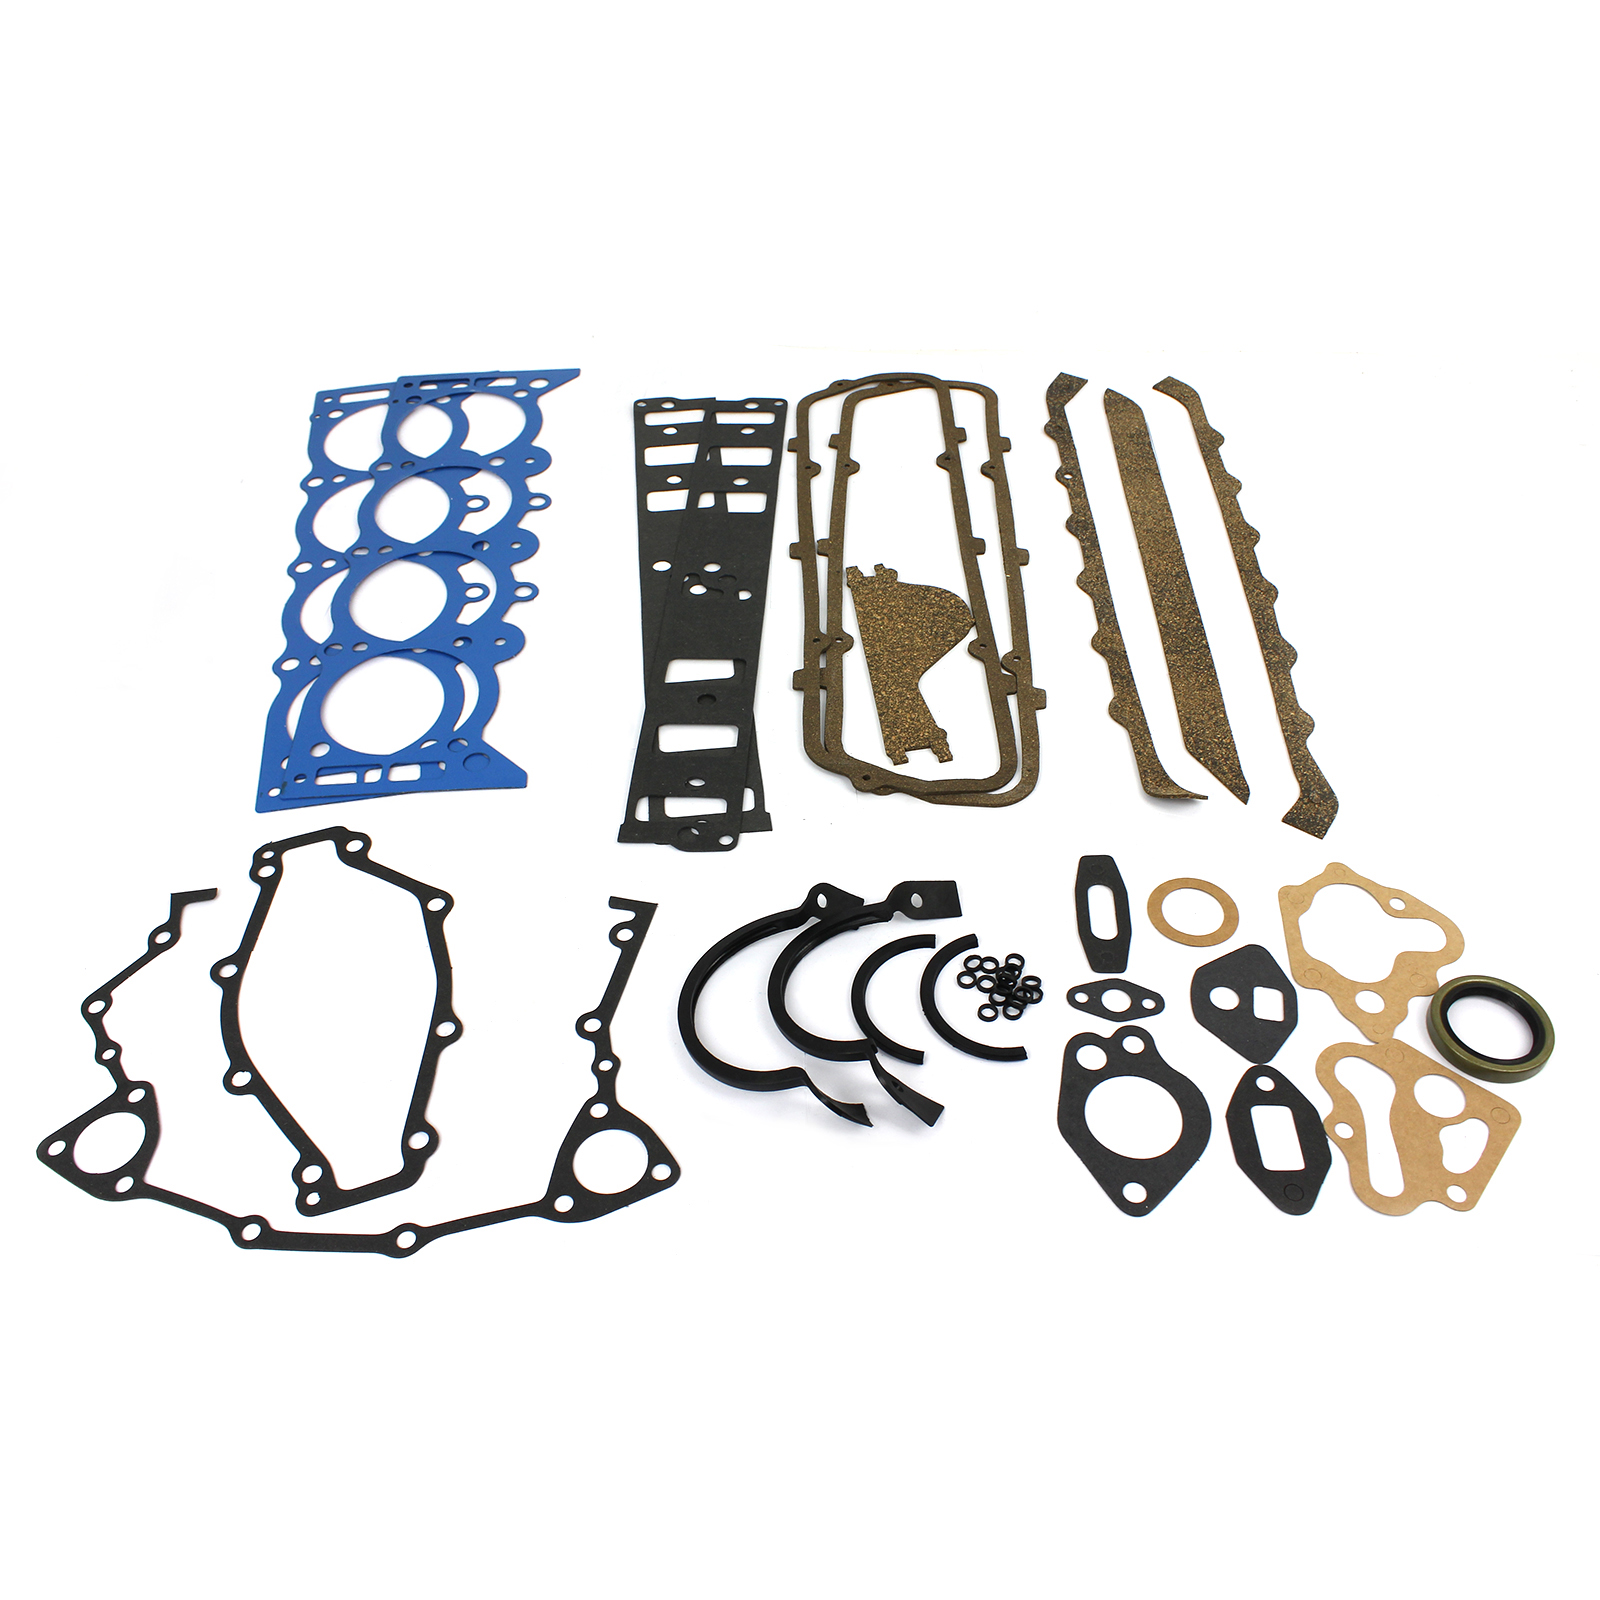 Holden-253-308-Full-Gasket-Set-ROPE-Rms